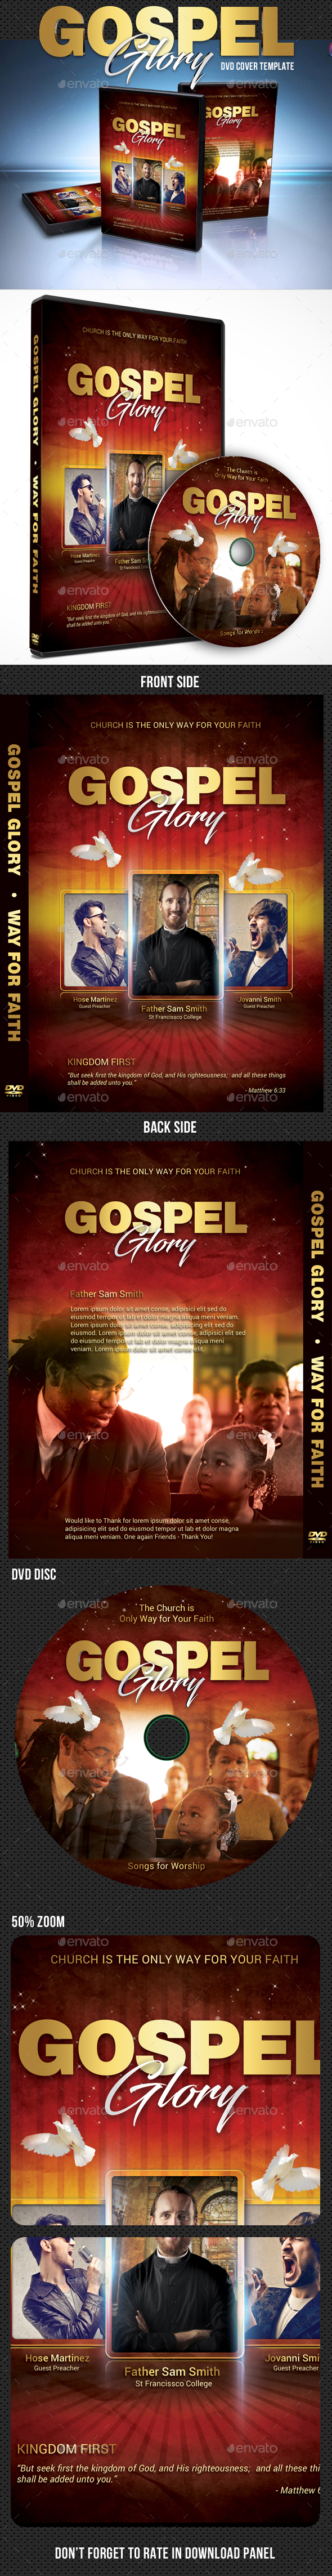 Gospel Glory DVD Cover Template - CD & DVD Artwork Print Templates